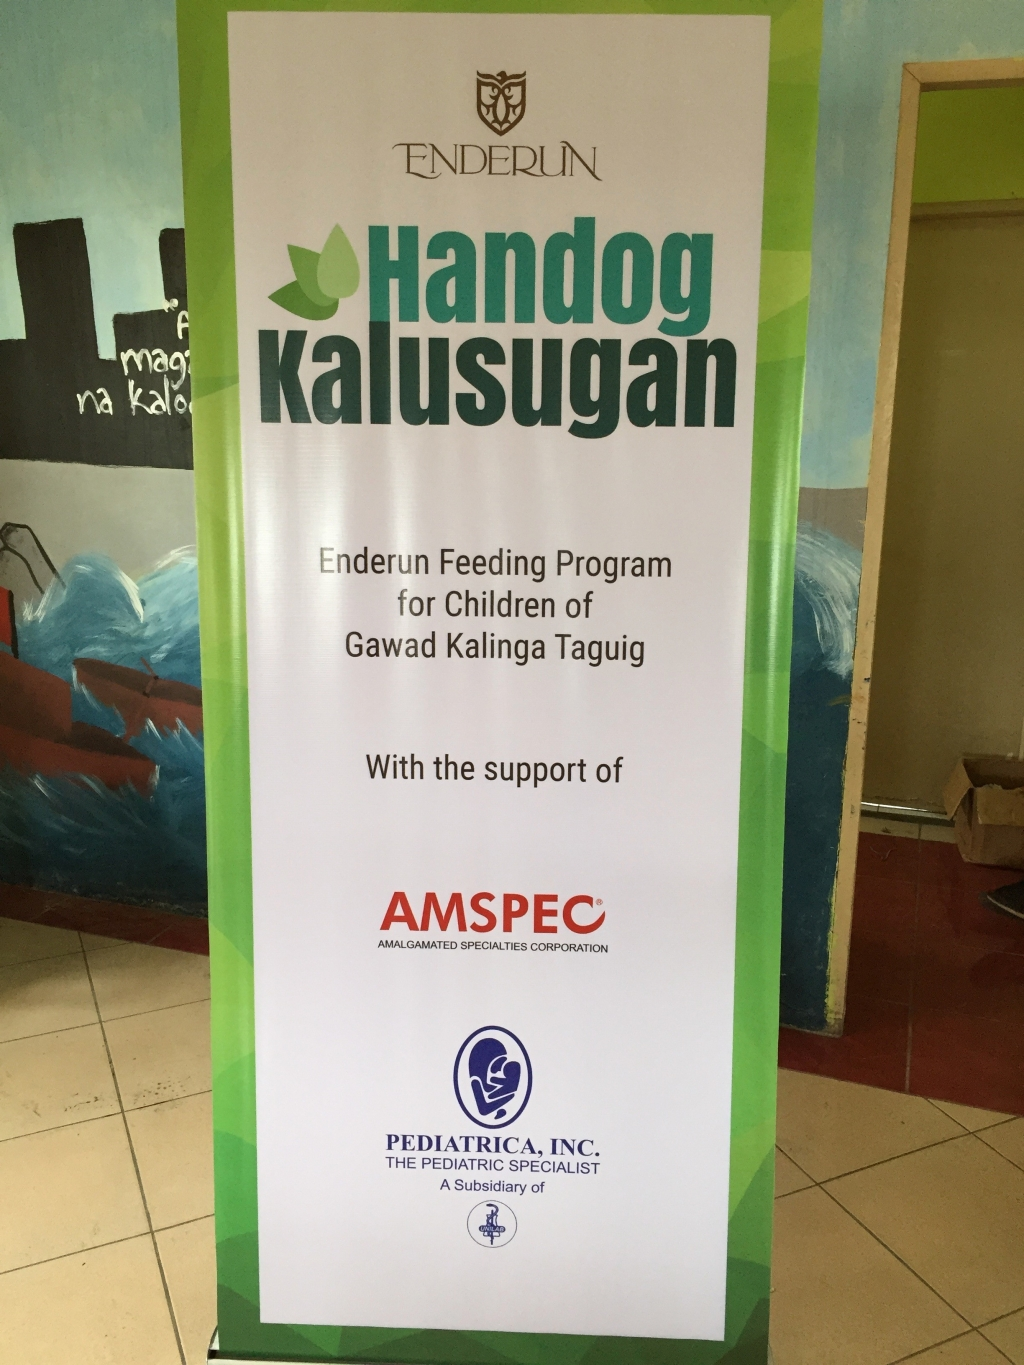 Handog Kalusugan, a feeding program led by Enderun Colleges with the support of Amalgamated Specialties Corporation and Pediatrica, Inc.